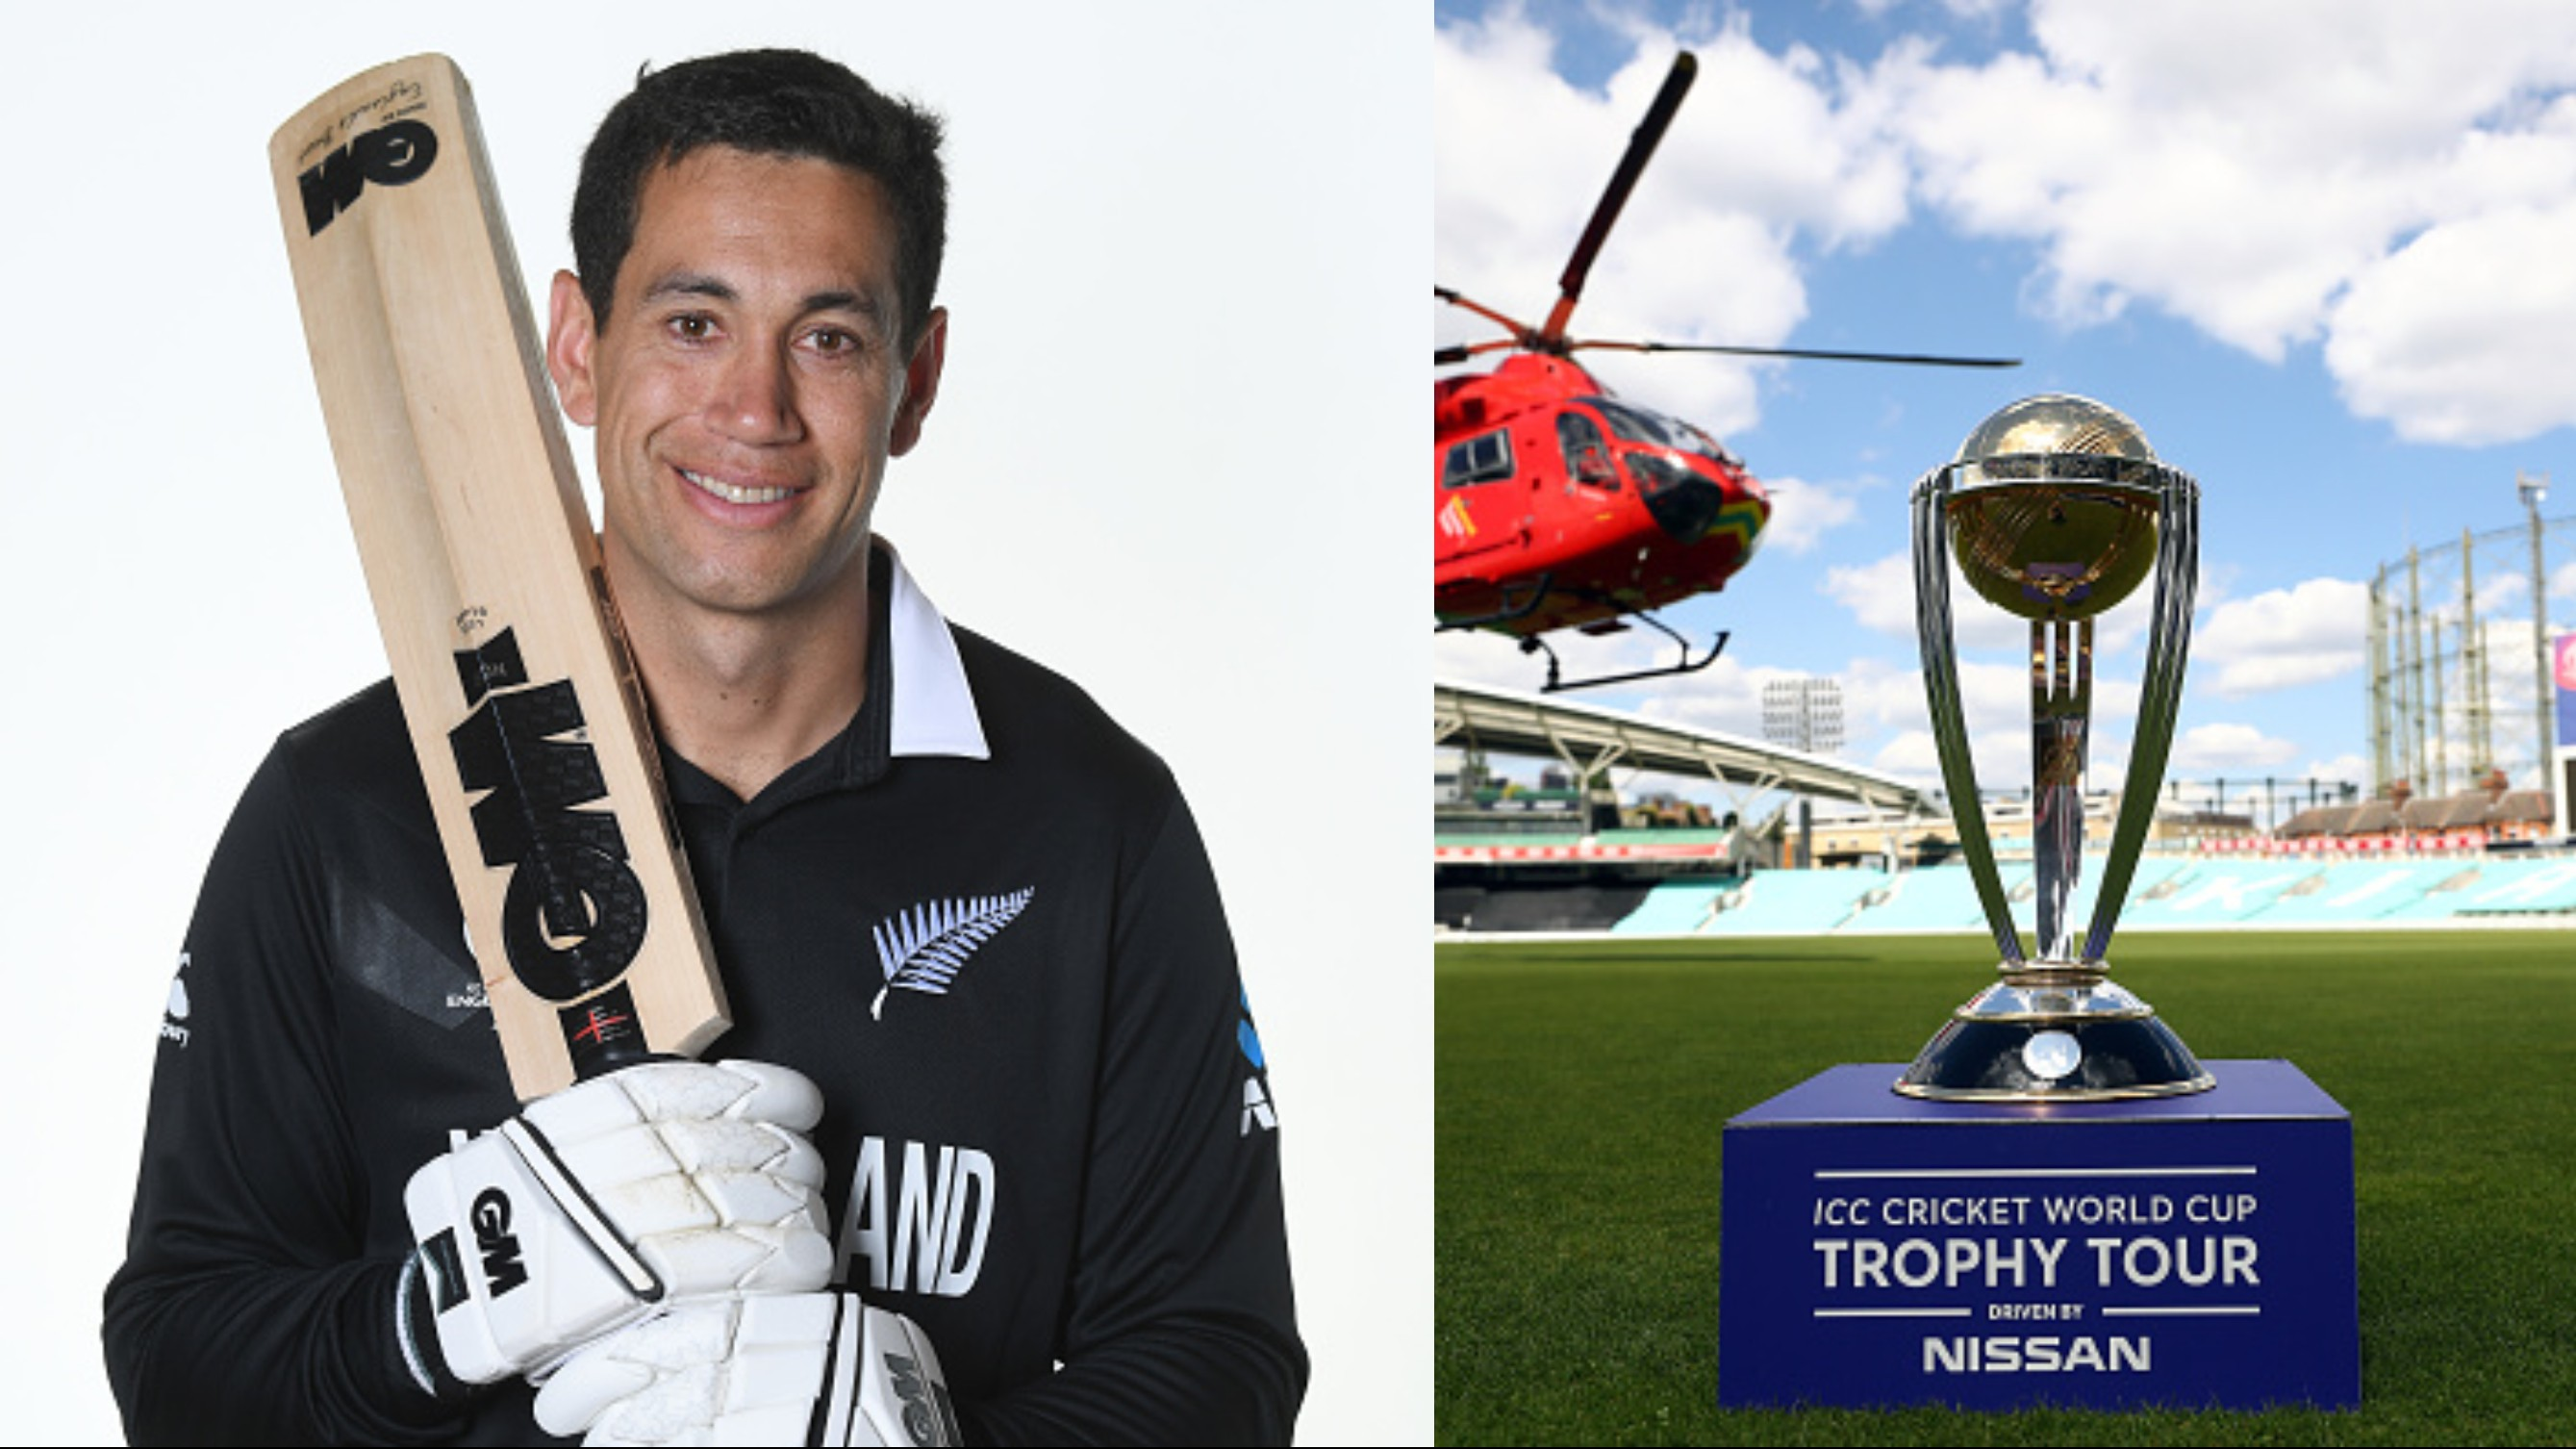 CWC 2019: New Zealand veteran Ross Taylor says he is inspired by the 'Universe Boss' Chris Gayle